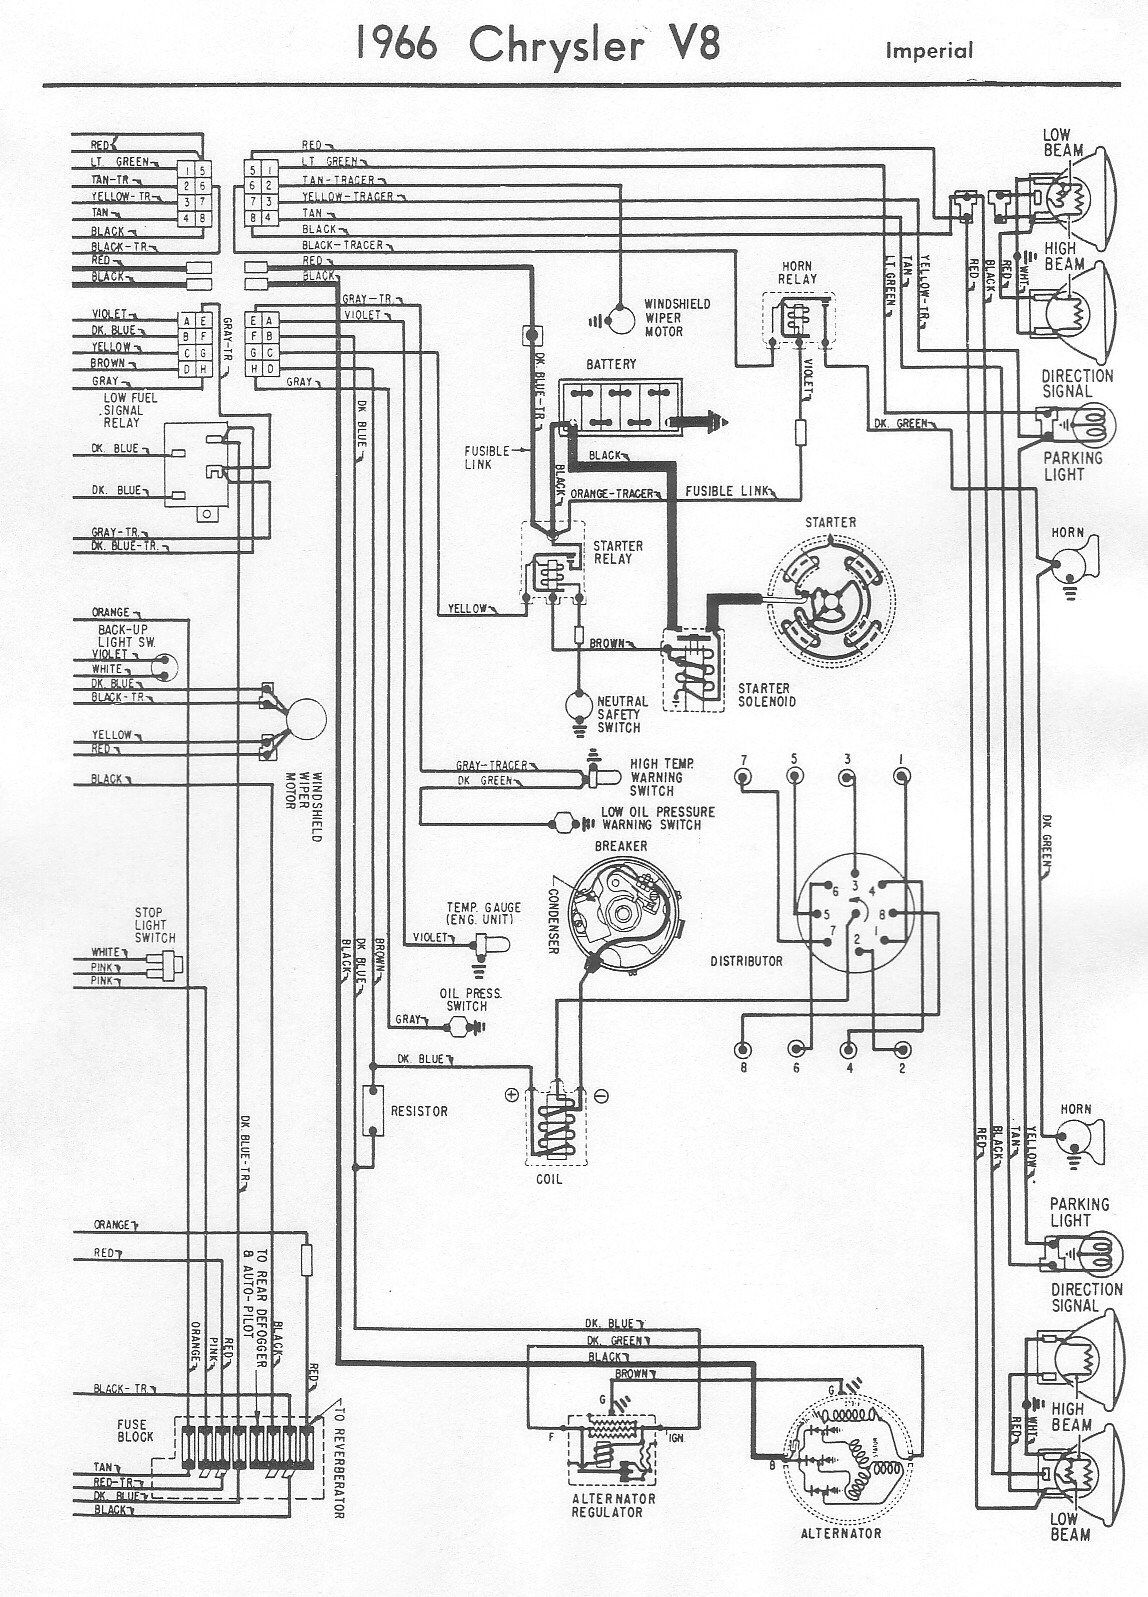 Fabulous Chrysler 300 Schematic Wiring Library Wiring 101 Photwellnesstrialsorg